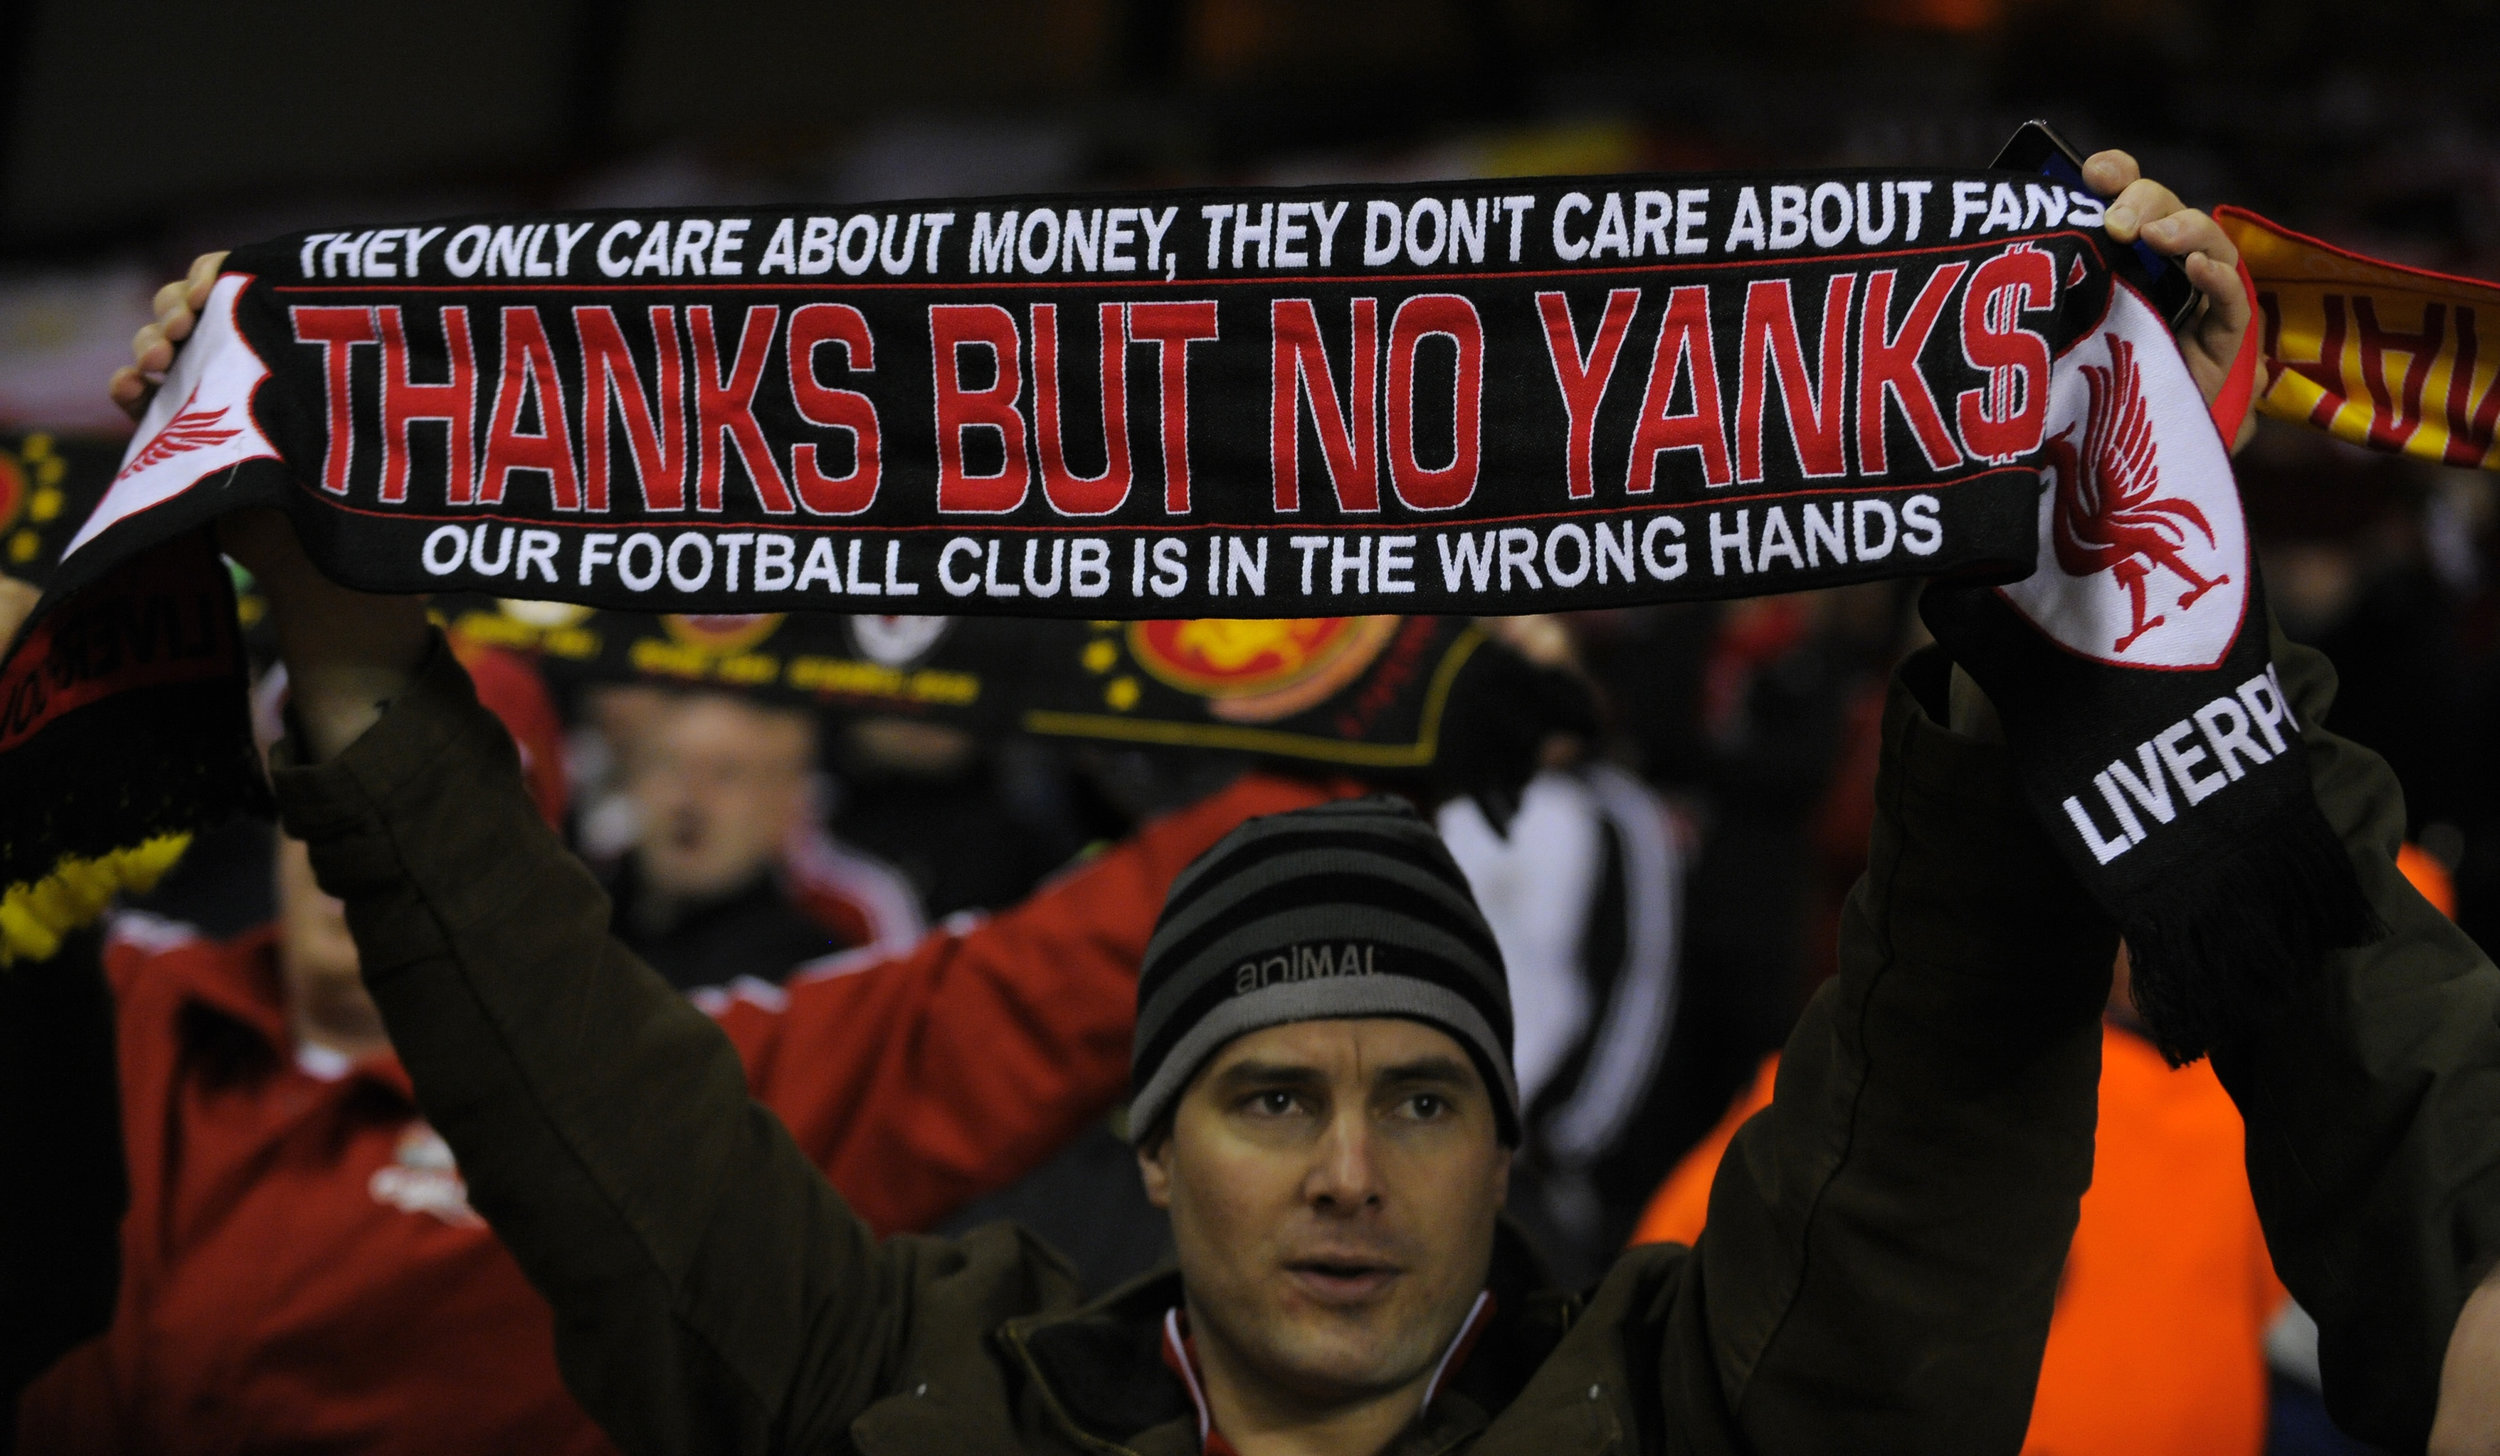 Liverpool FC fans protest the club's new American owners in 2010.  Photo by AMA/Corbis